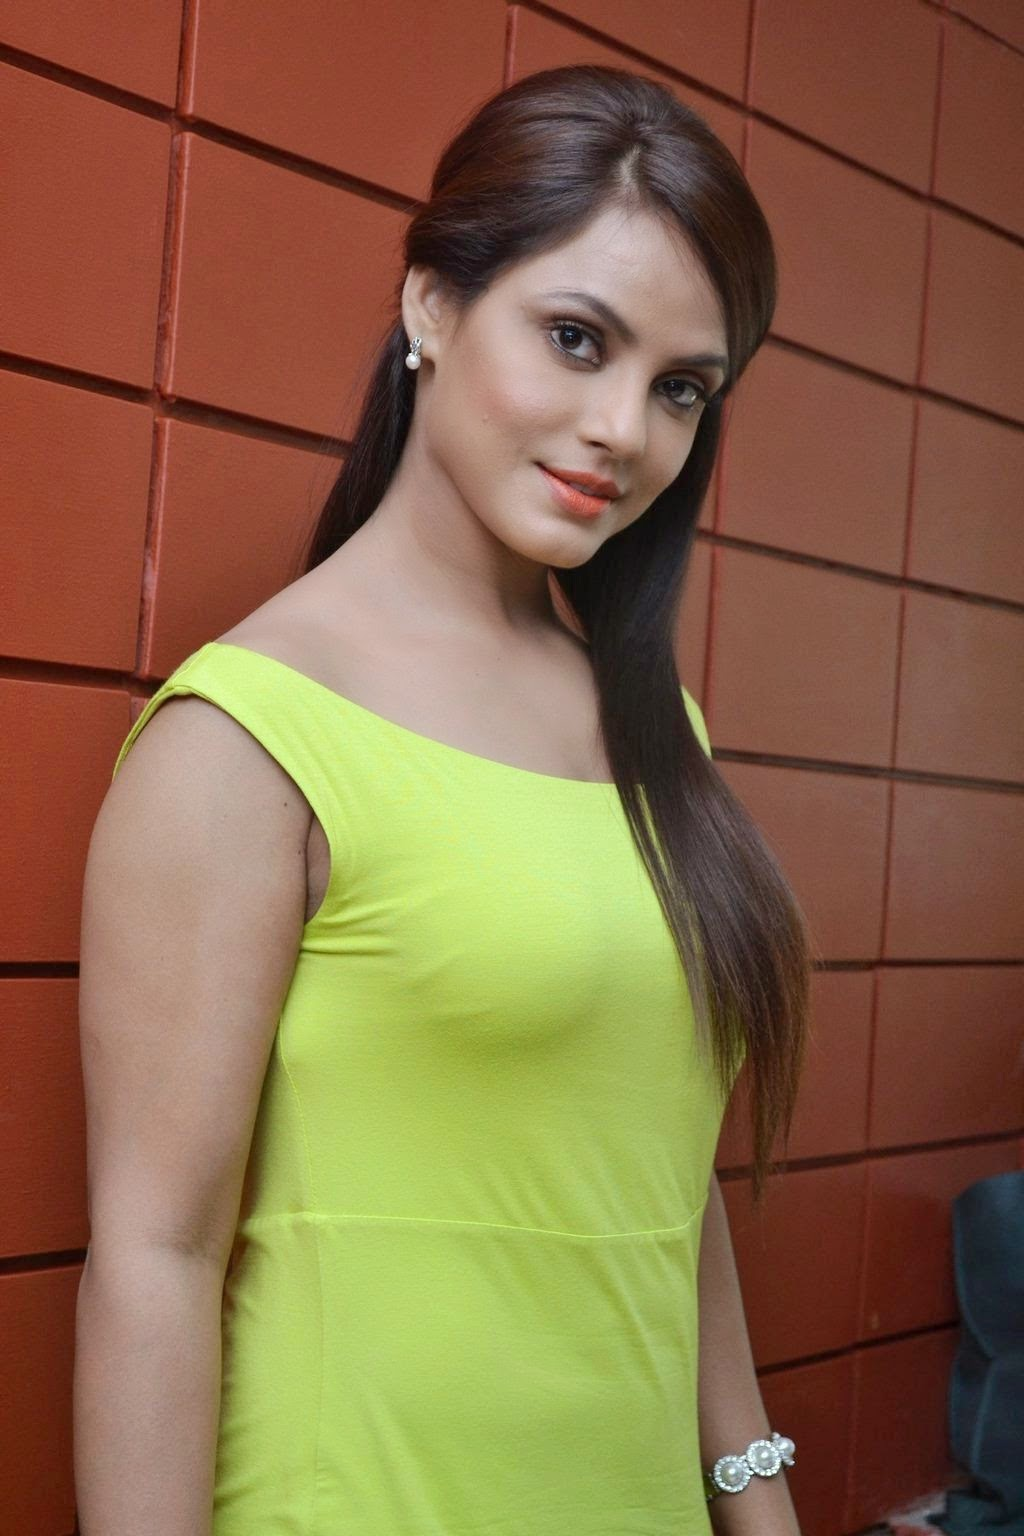 neetu chandra chest breast close up bra exposed through transparent dress